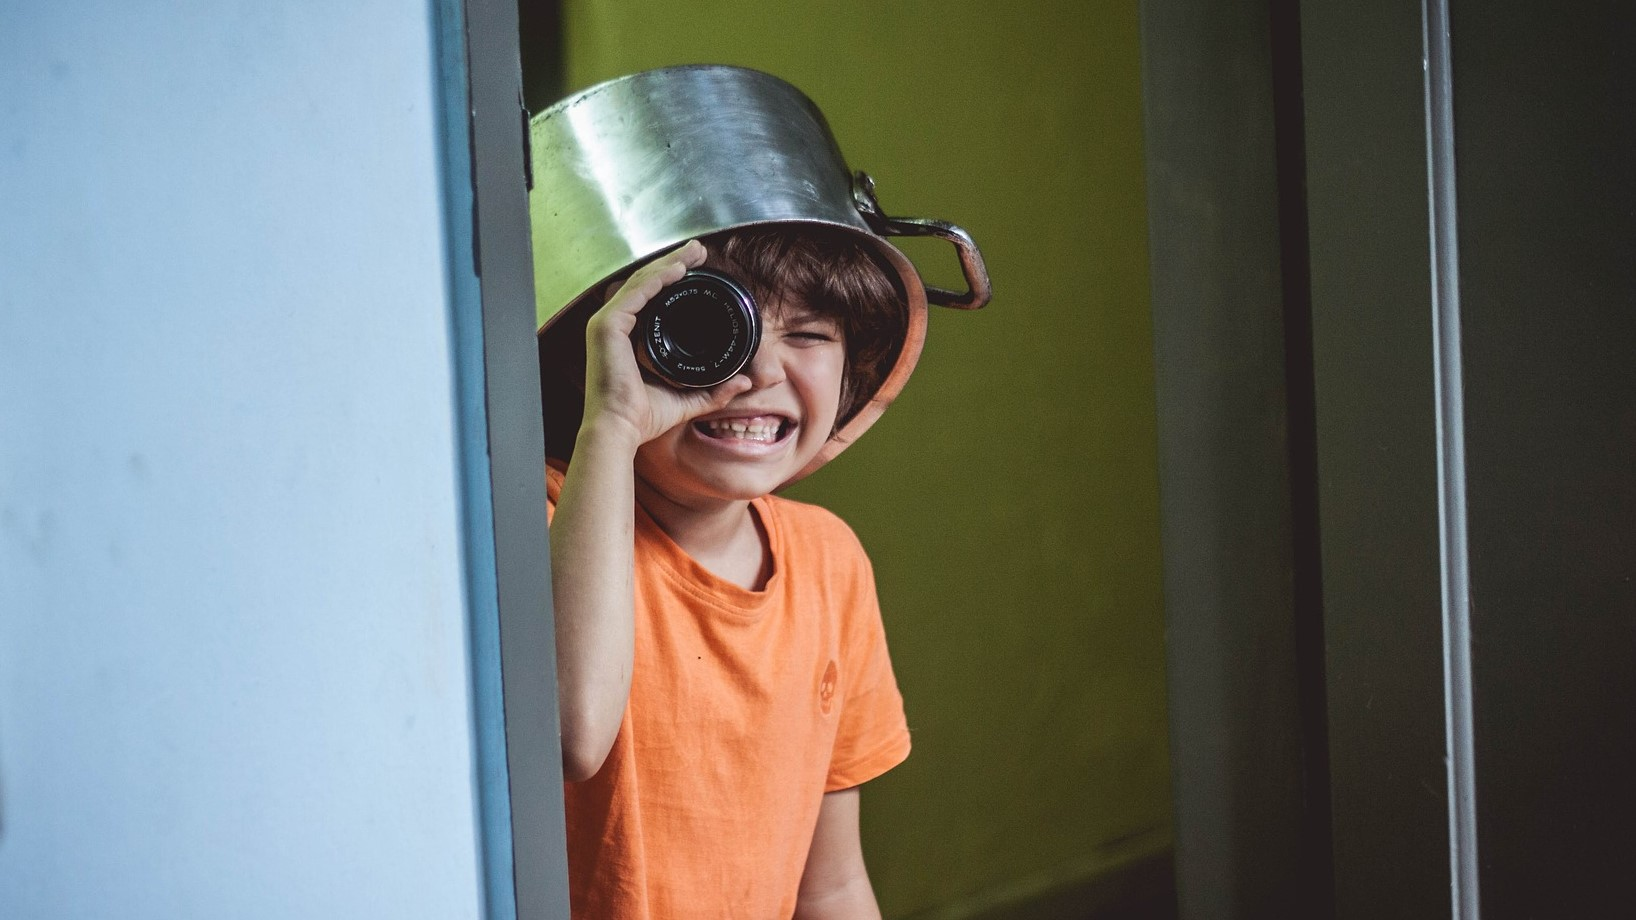 Image: child wearing a kitchen pot on their head, peeking around the corner with a camera lens as a telescope